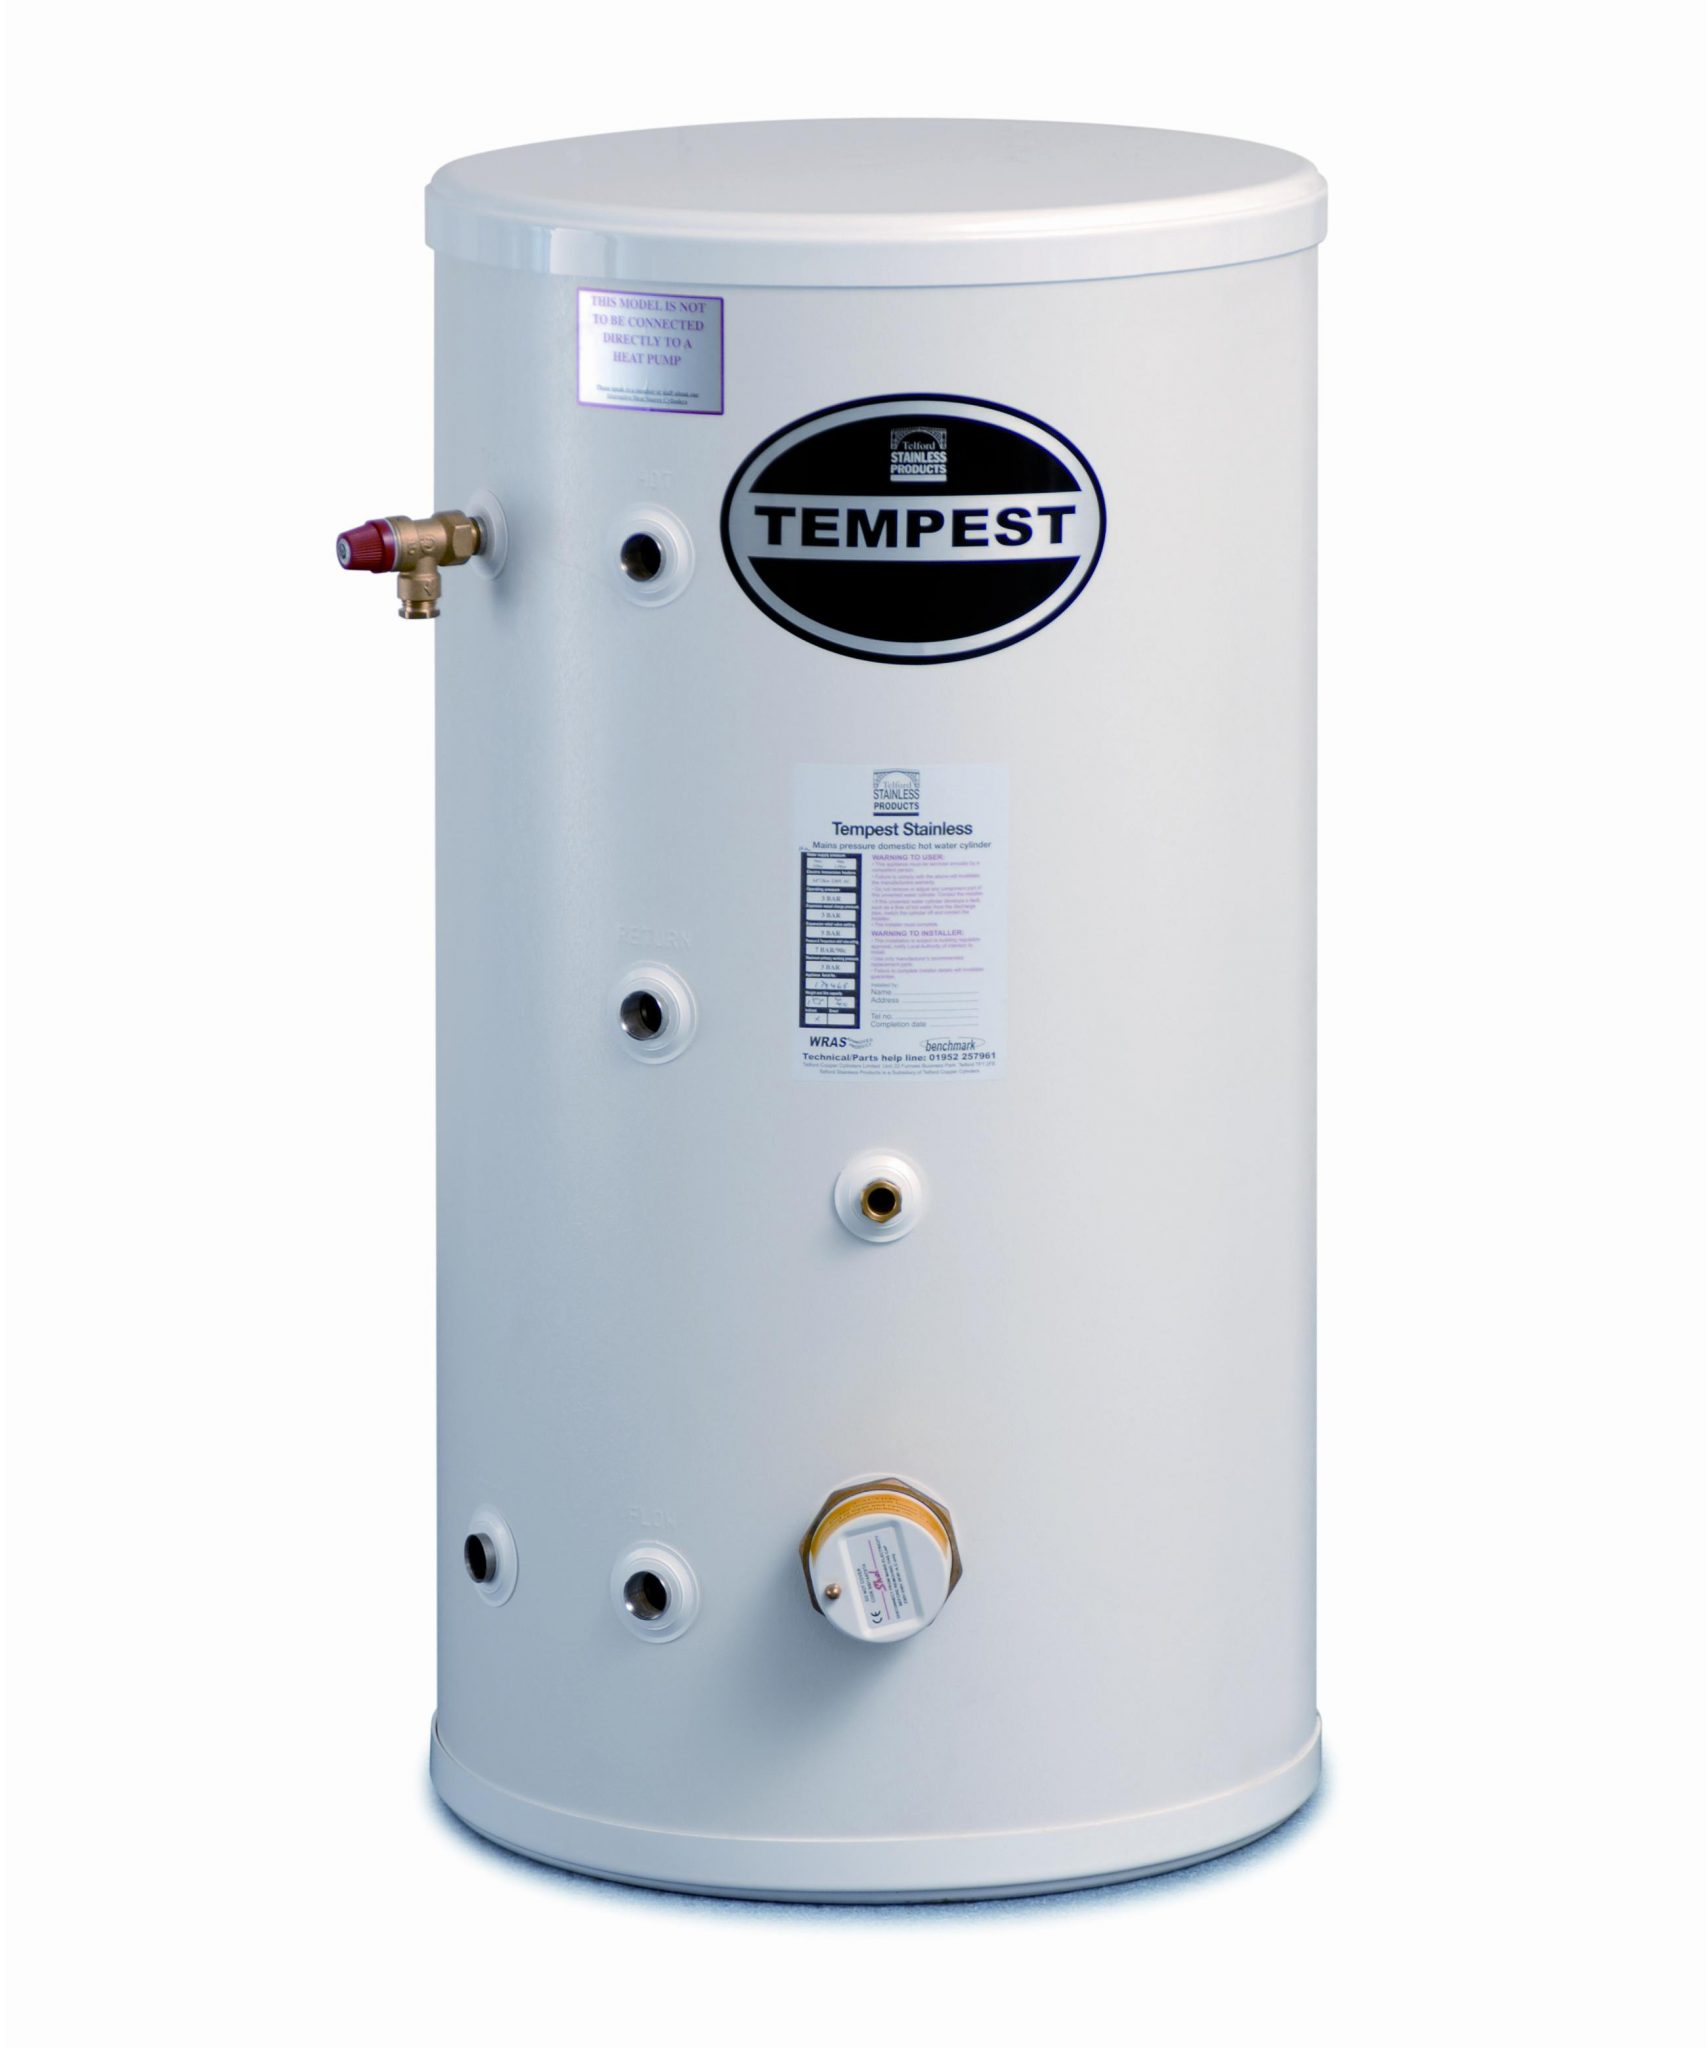 Telford Tempest Unvented Cylinder Indirect - Installers Hub Online Shop